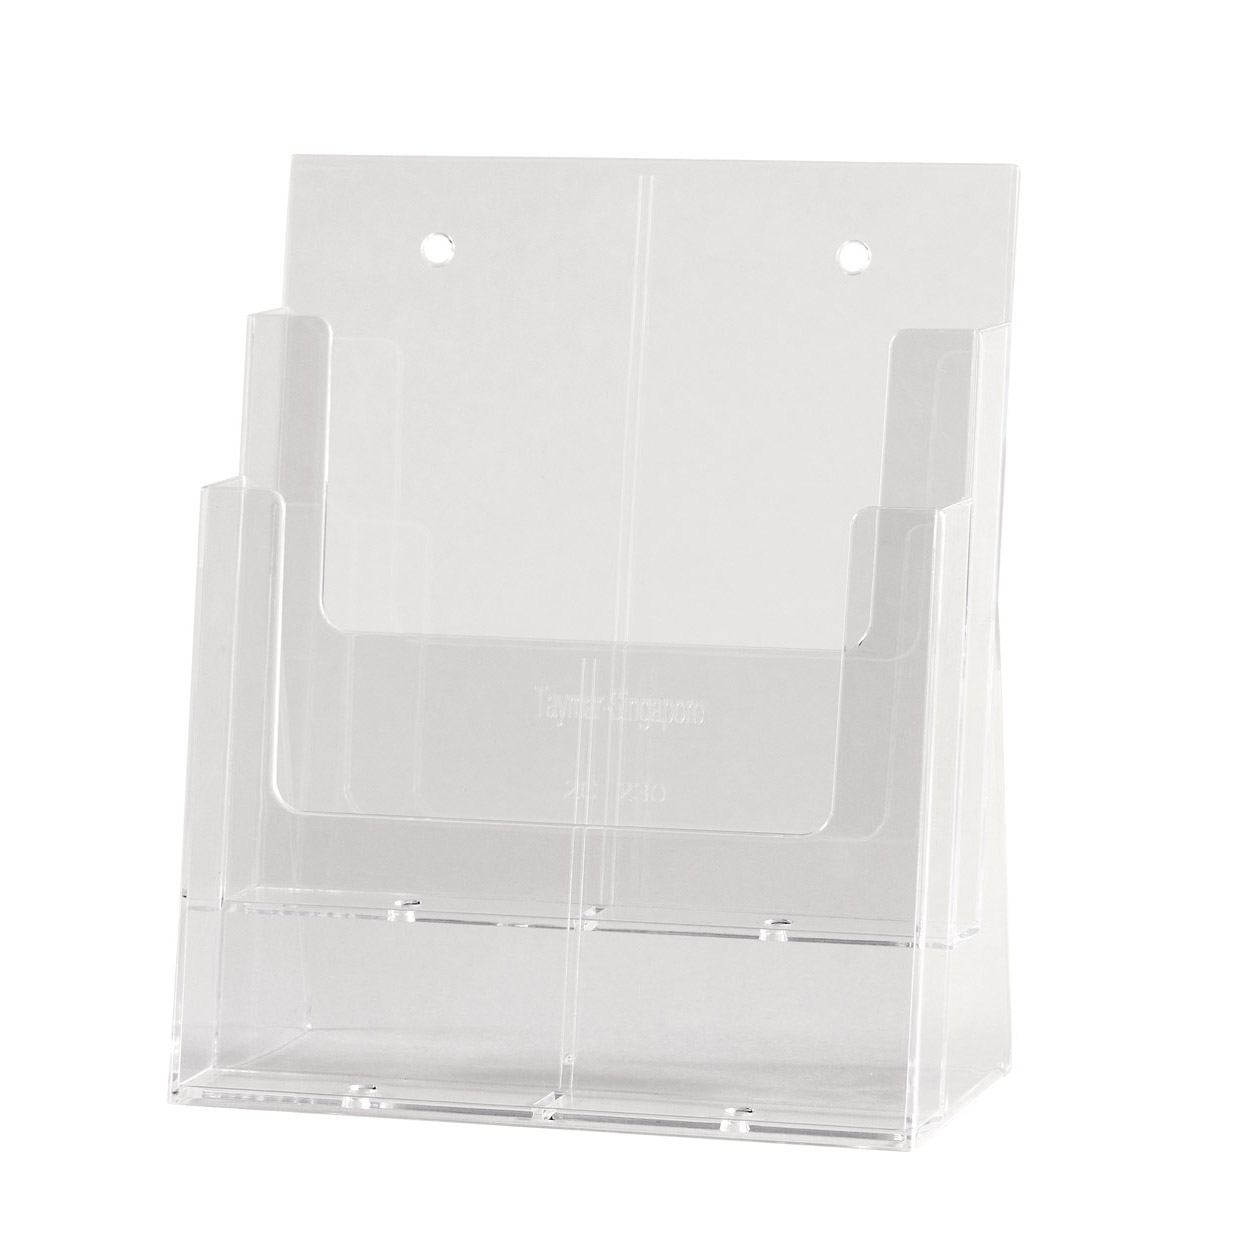 Acrylic Freestanding brochure holder Double Level A4 Size. Dimension 260 H x 240 W x 130mm D